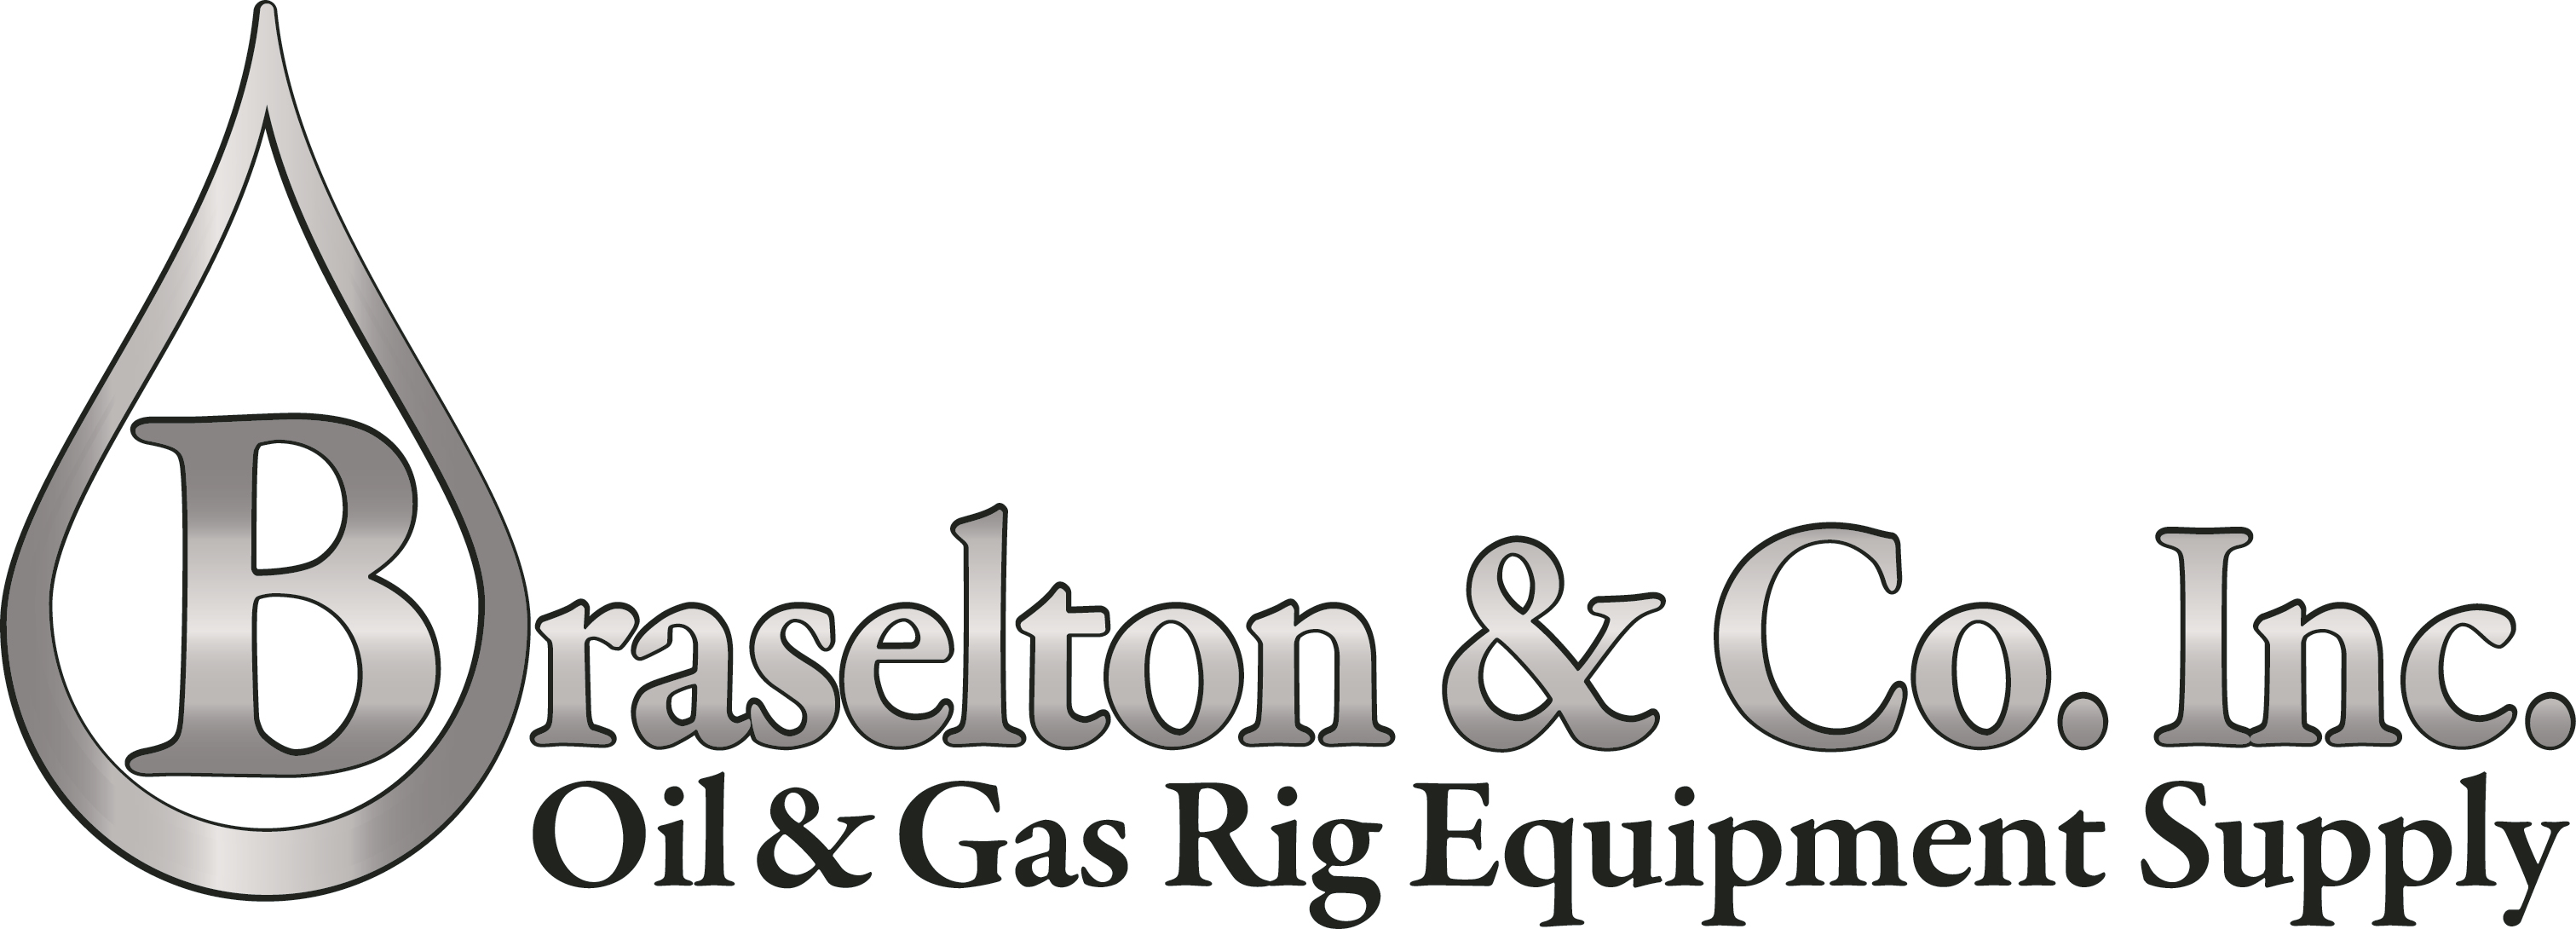 Braselton & Co - Oil & Gas Rig Equipment Supply